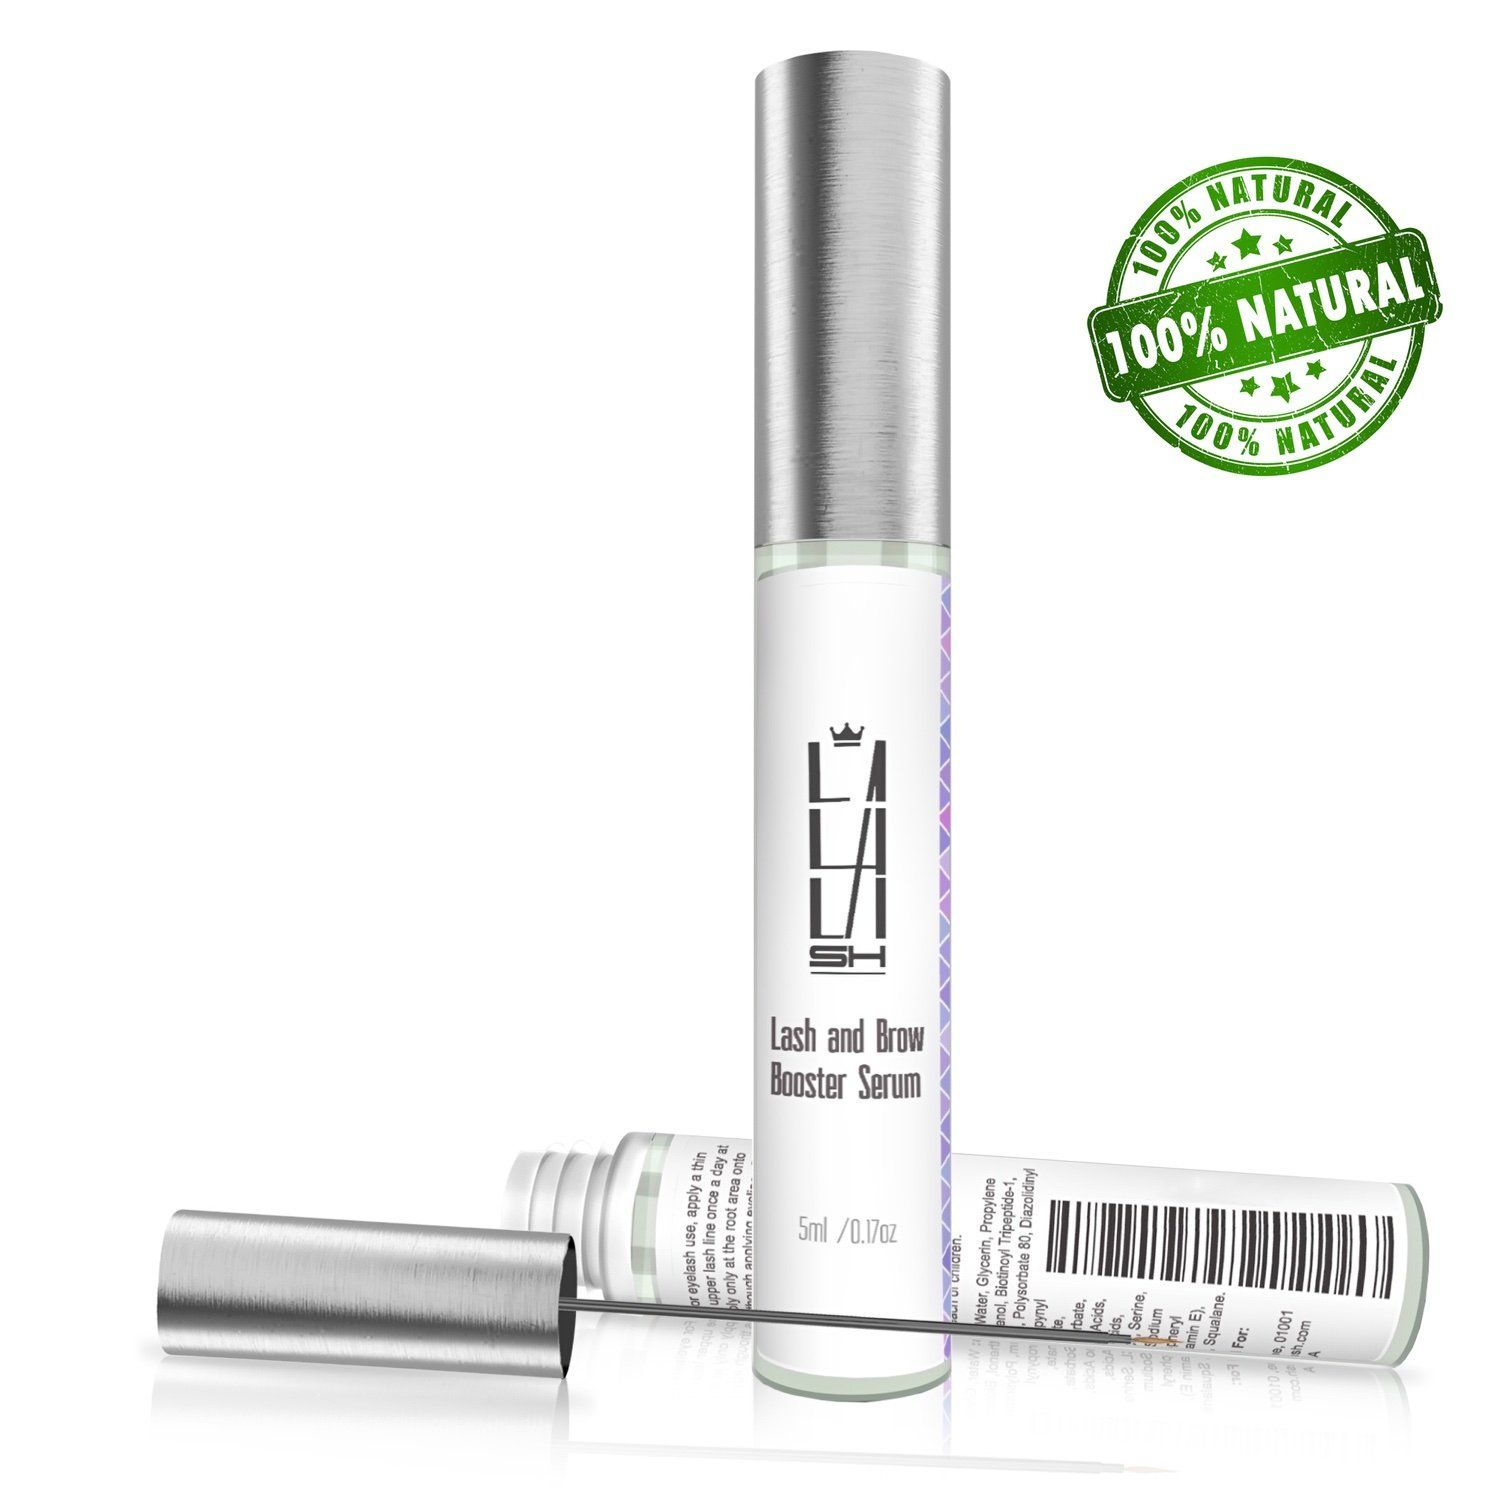 f75f7f93759 Natural Eyelash Growth Serum Eyebrow Growth Serum Made in USA Lash Booster  for Longer Thicker Natural Eyelashes and Fuller Eyebrows Enhancing Lash  Growth ...